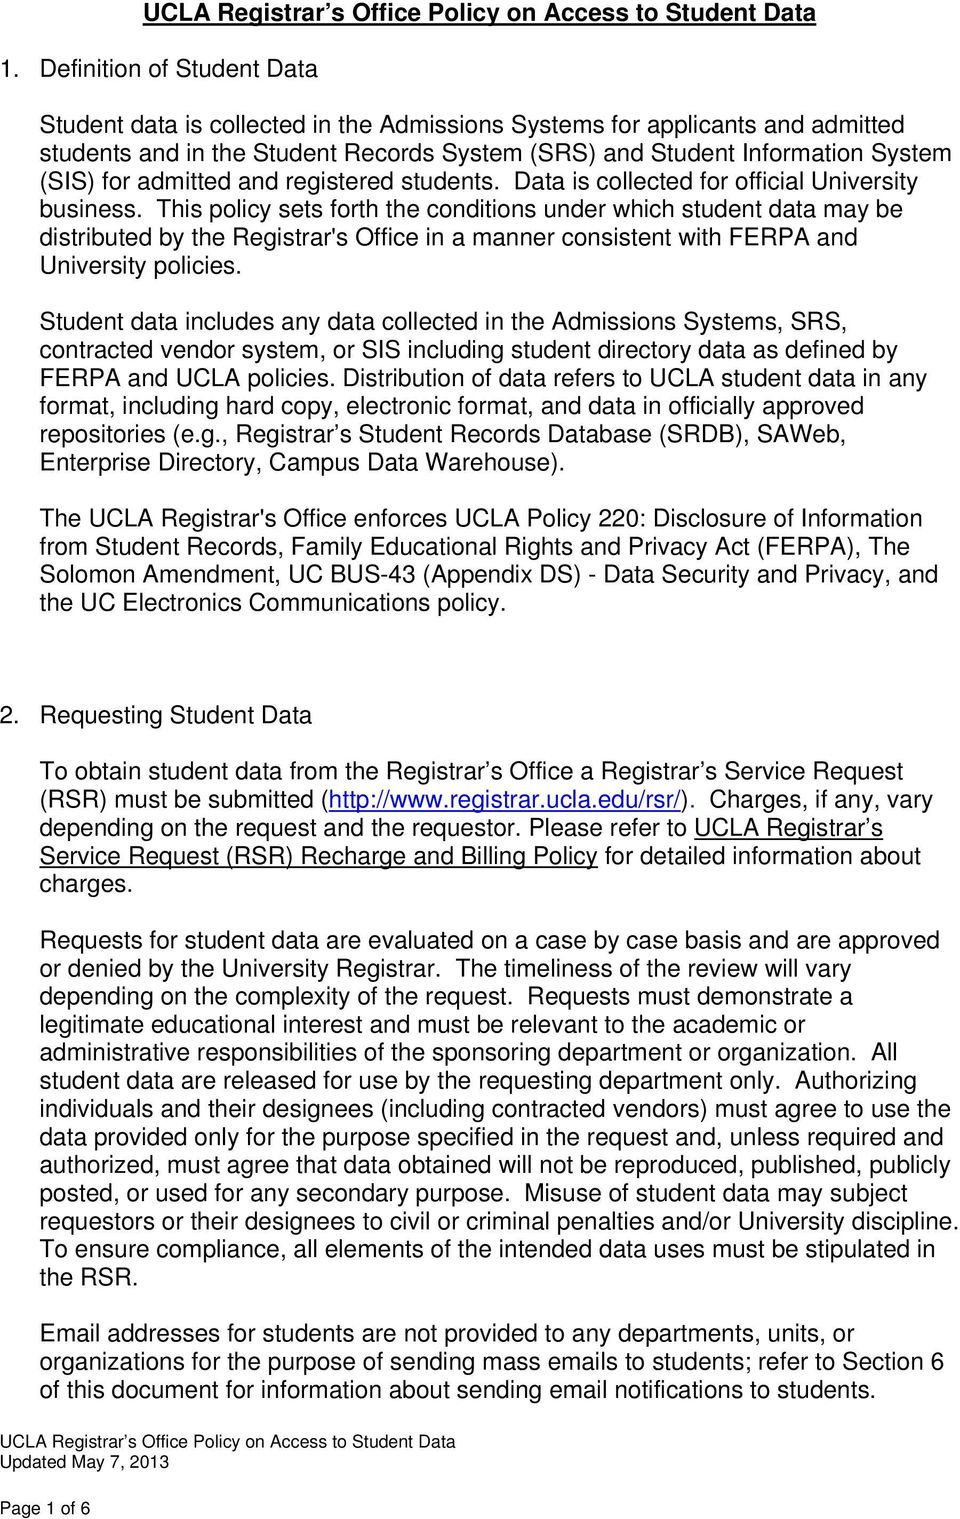 UCLA Registrar s Office Policy on Access to Student Data - PDF